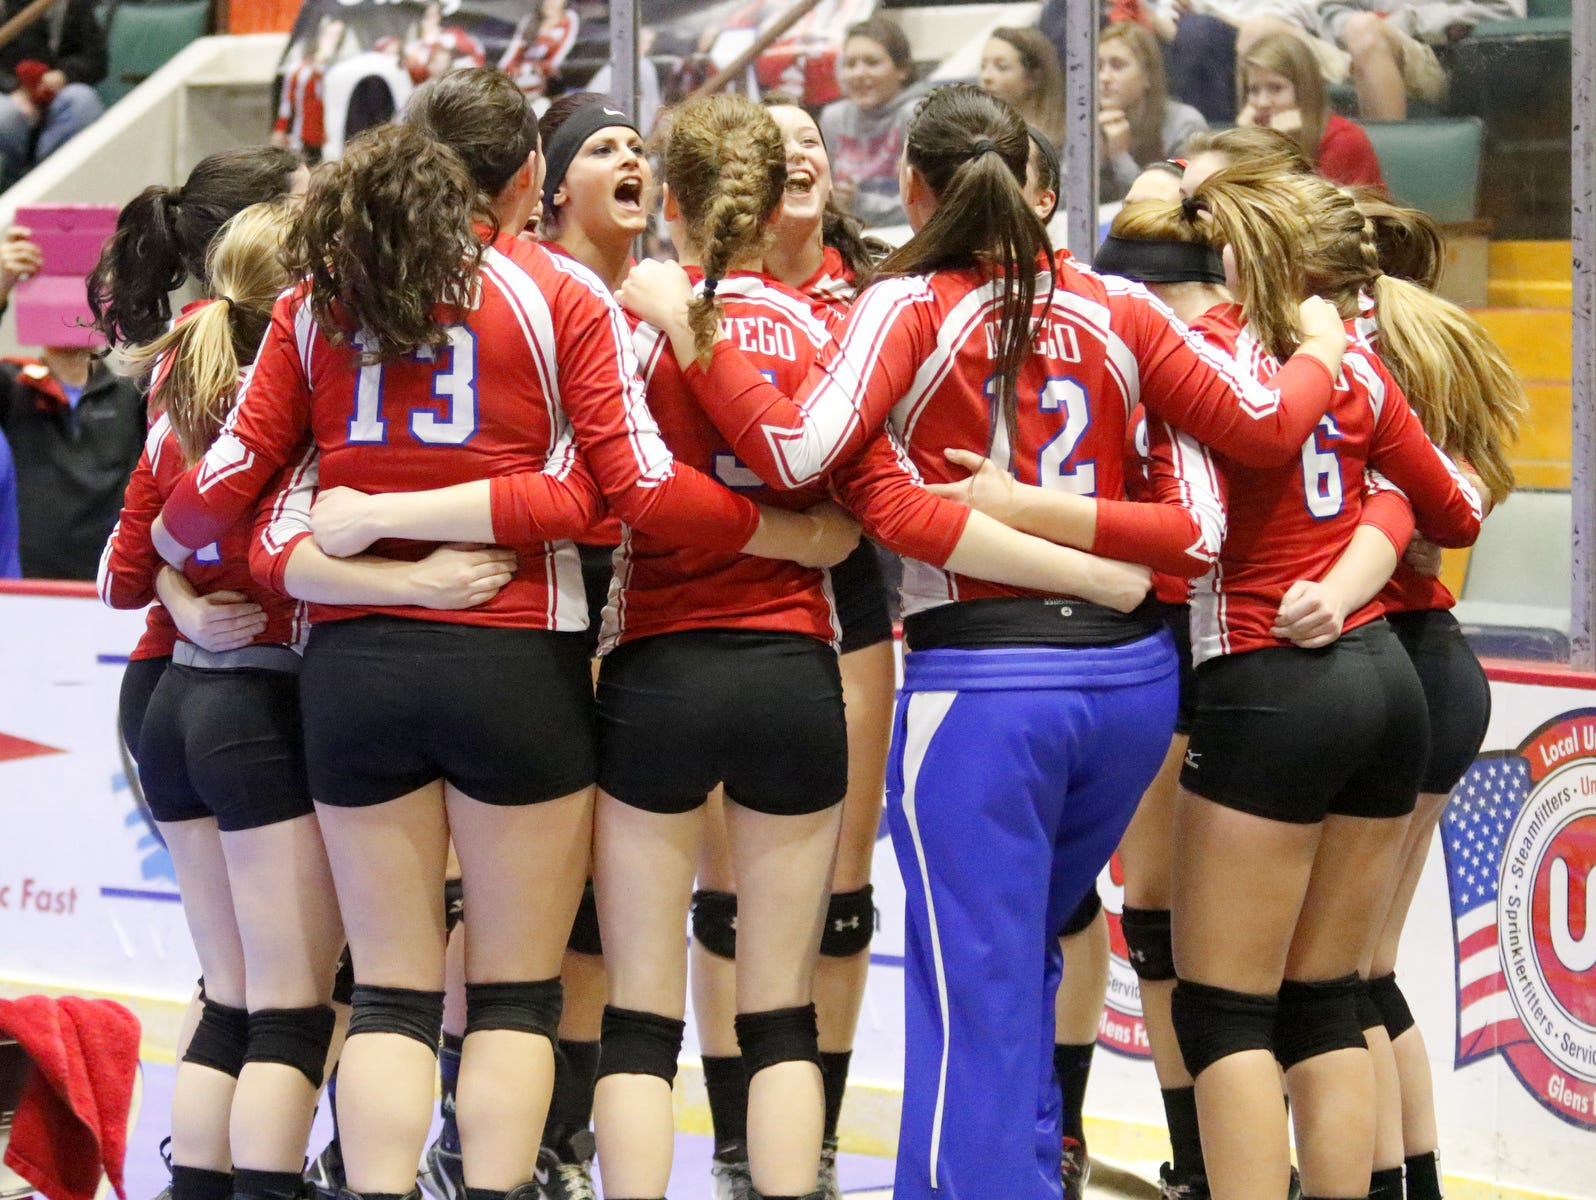 The Owego Free Academy girls volleyball team captured the Class B state title with a 3-1 win over John Glenn.